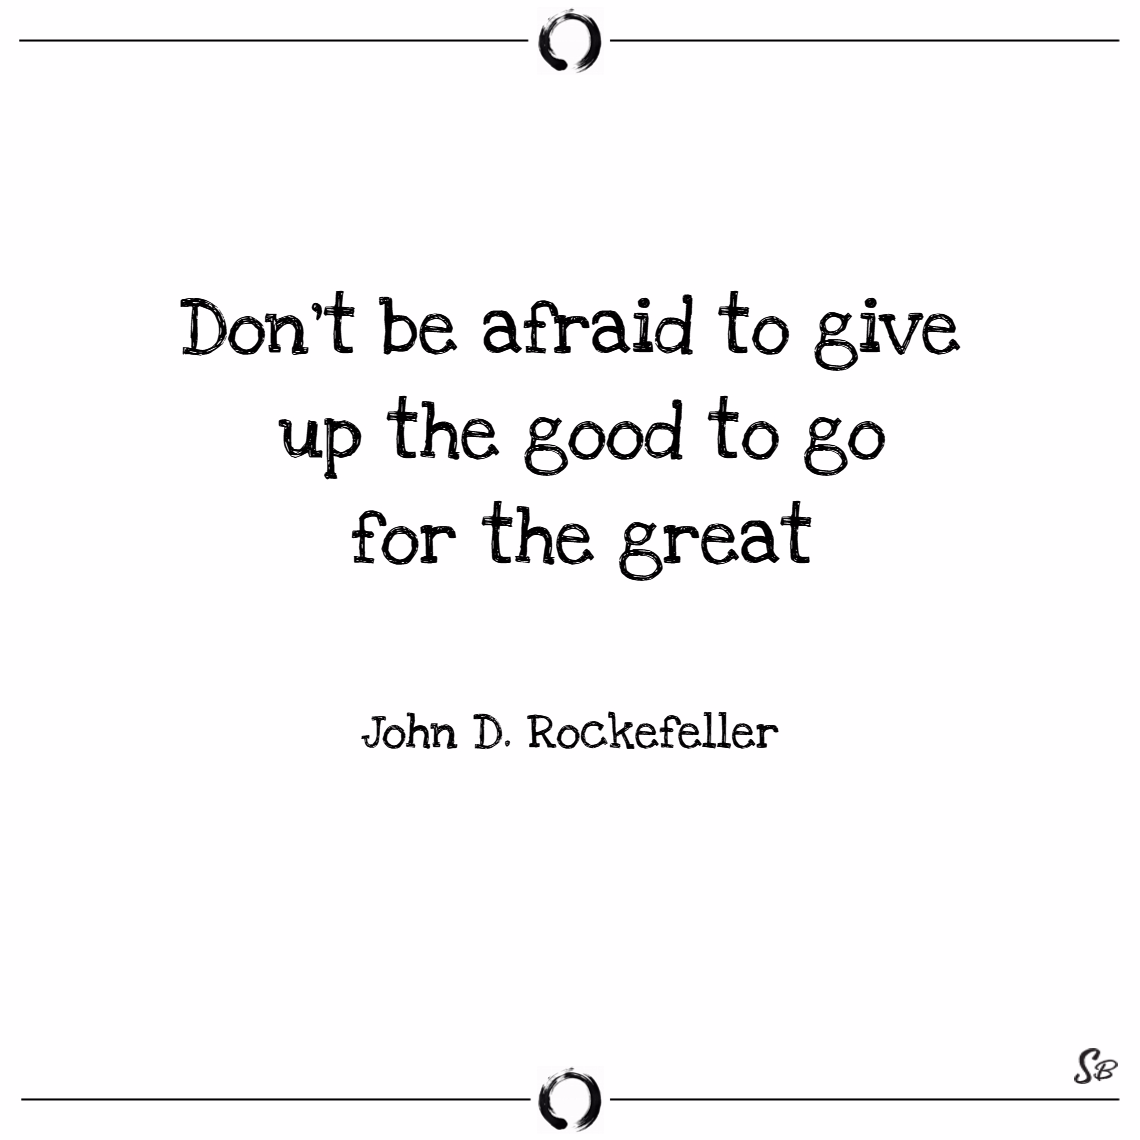 Don't be afraid to give up the good to go for the great. – john d. rockefeller